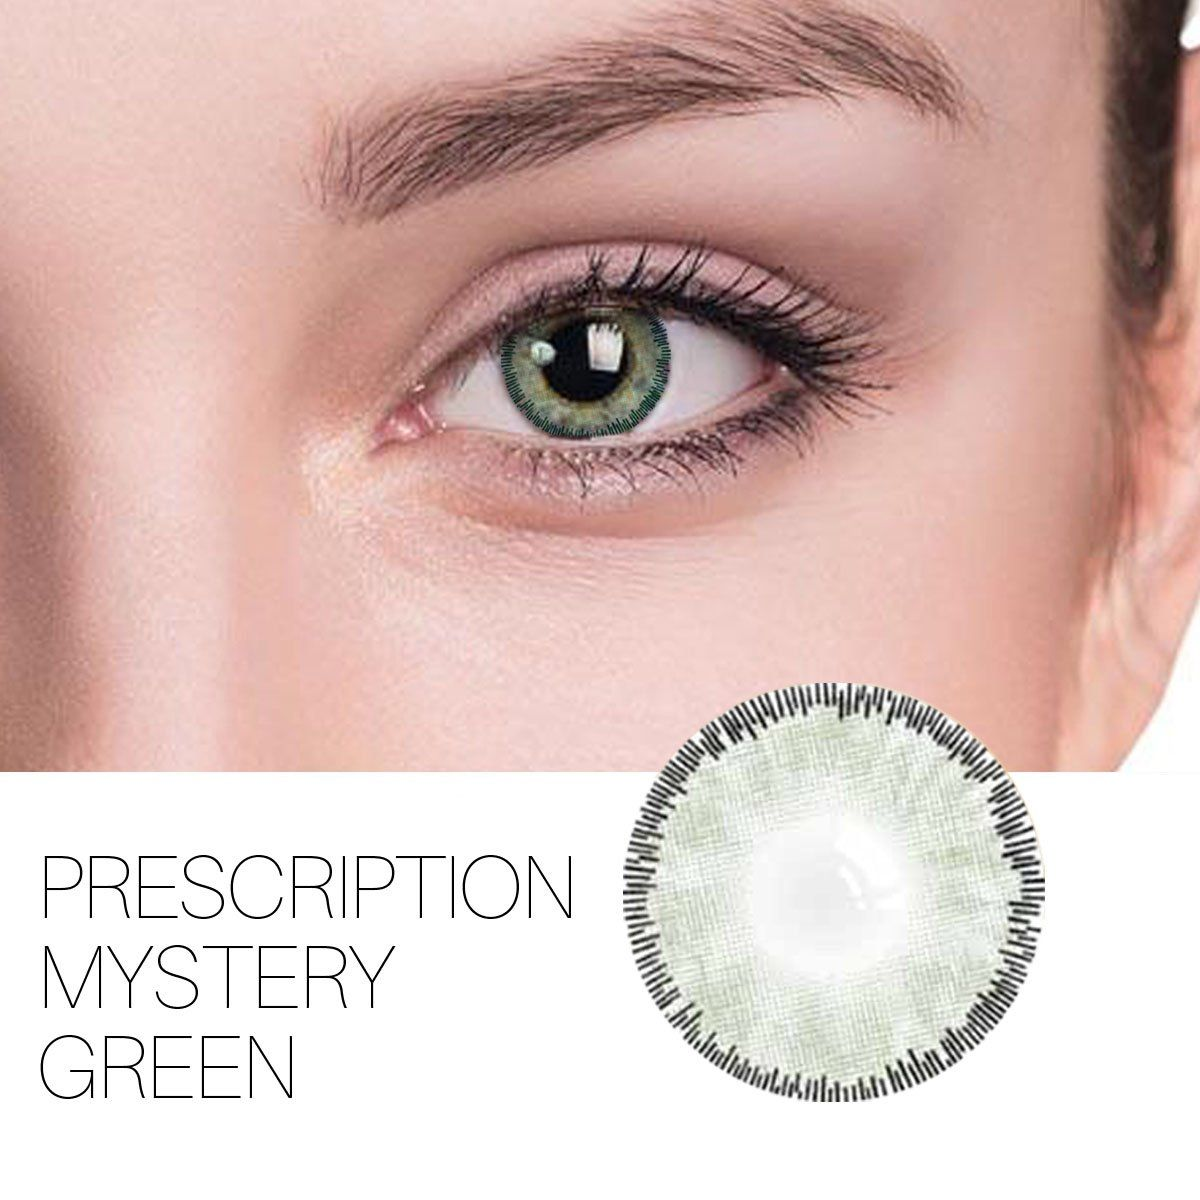 Buy Brand Mystery Prescription Green 14 0mm 1 Pair 12 Month Contact Lenses Free Shipping Green Contacts Lenses Eye Lens Colour Green Contacts